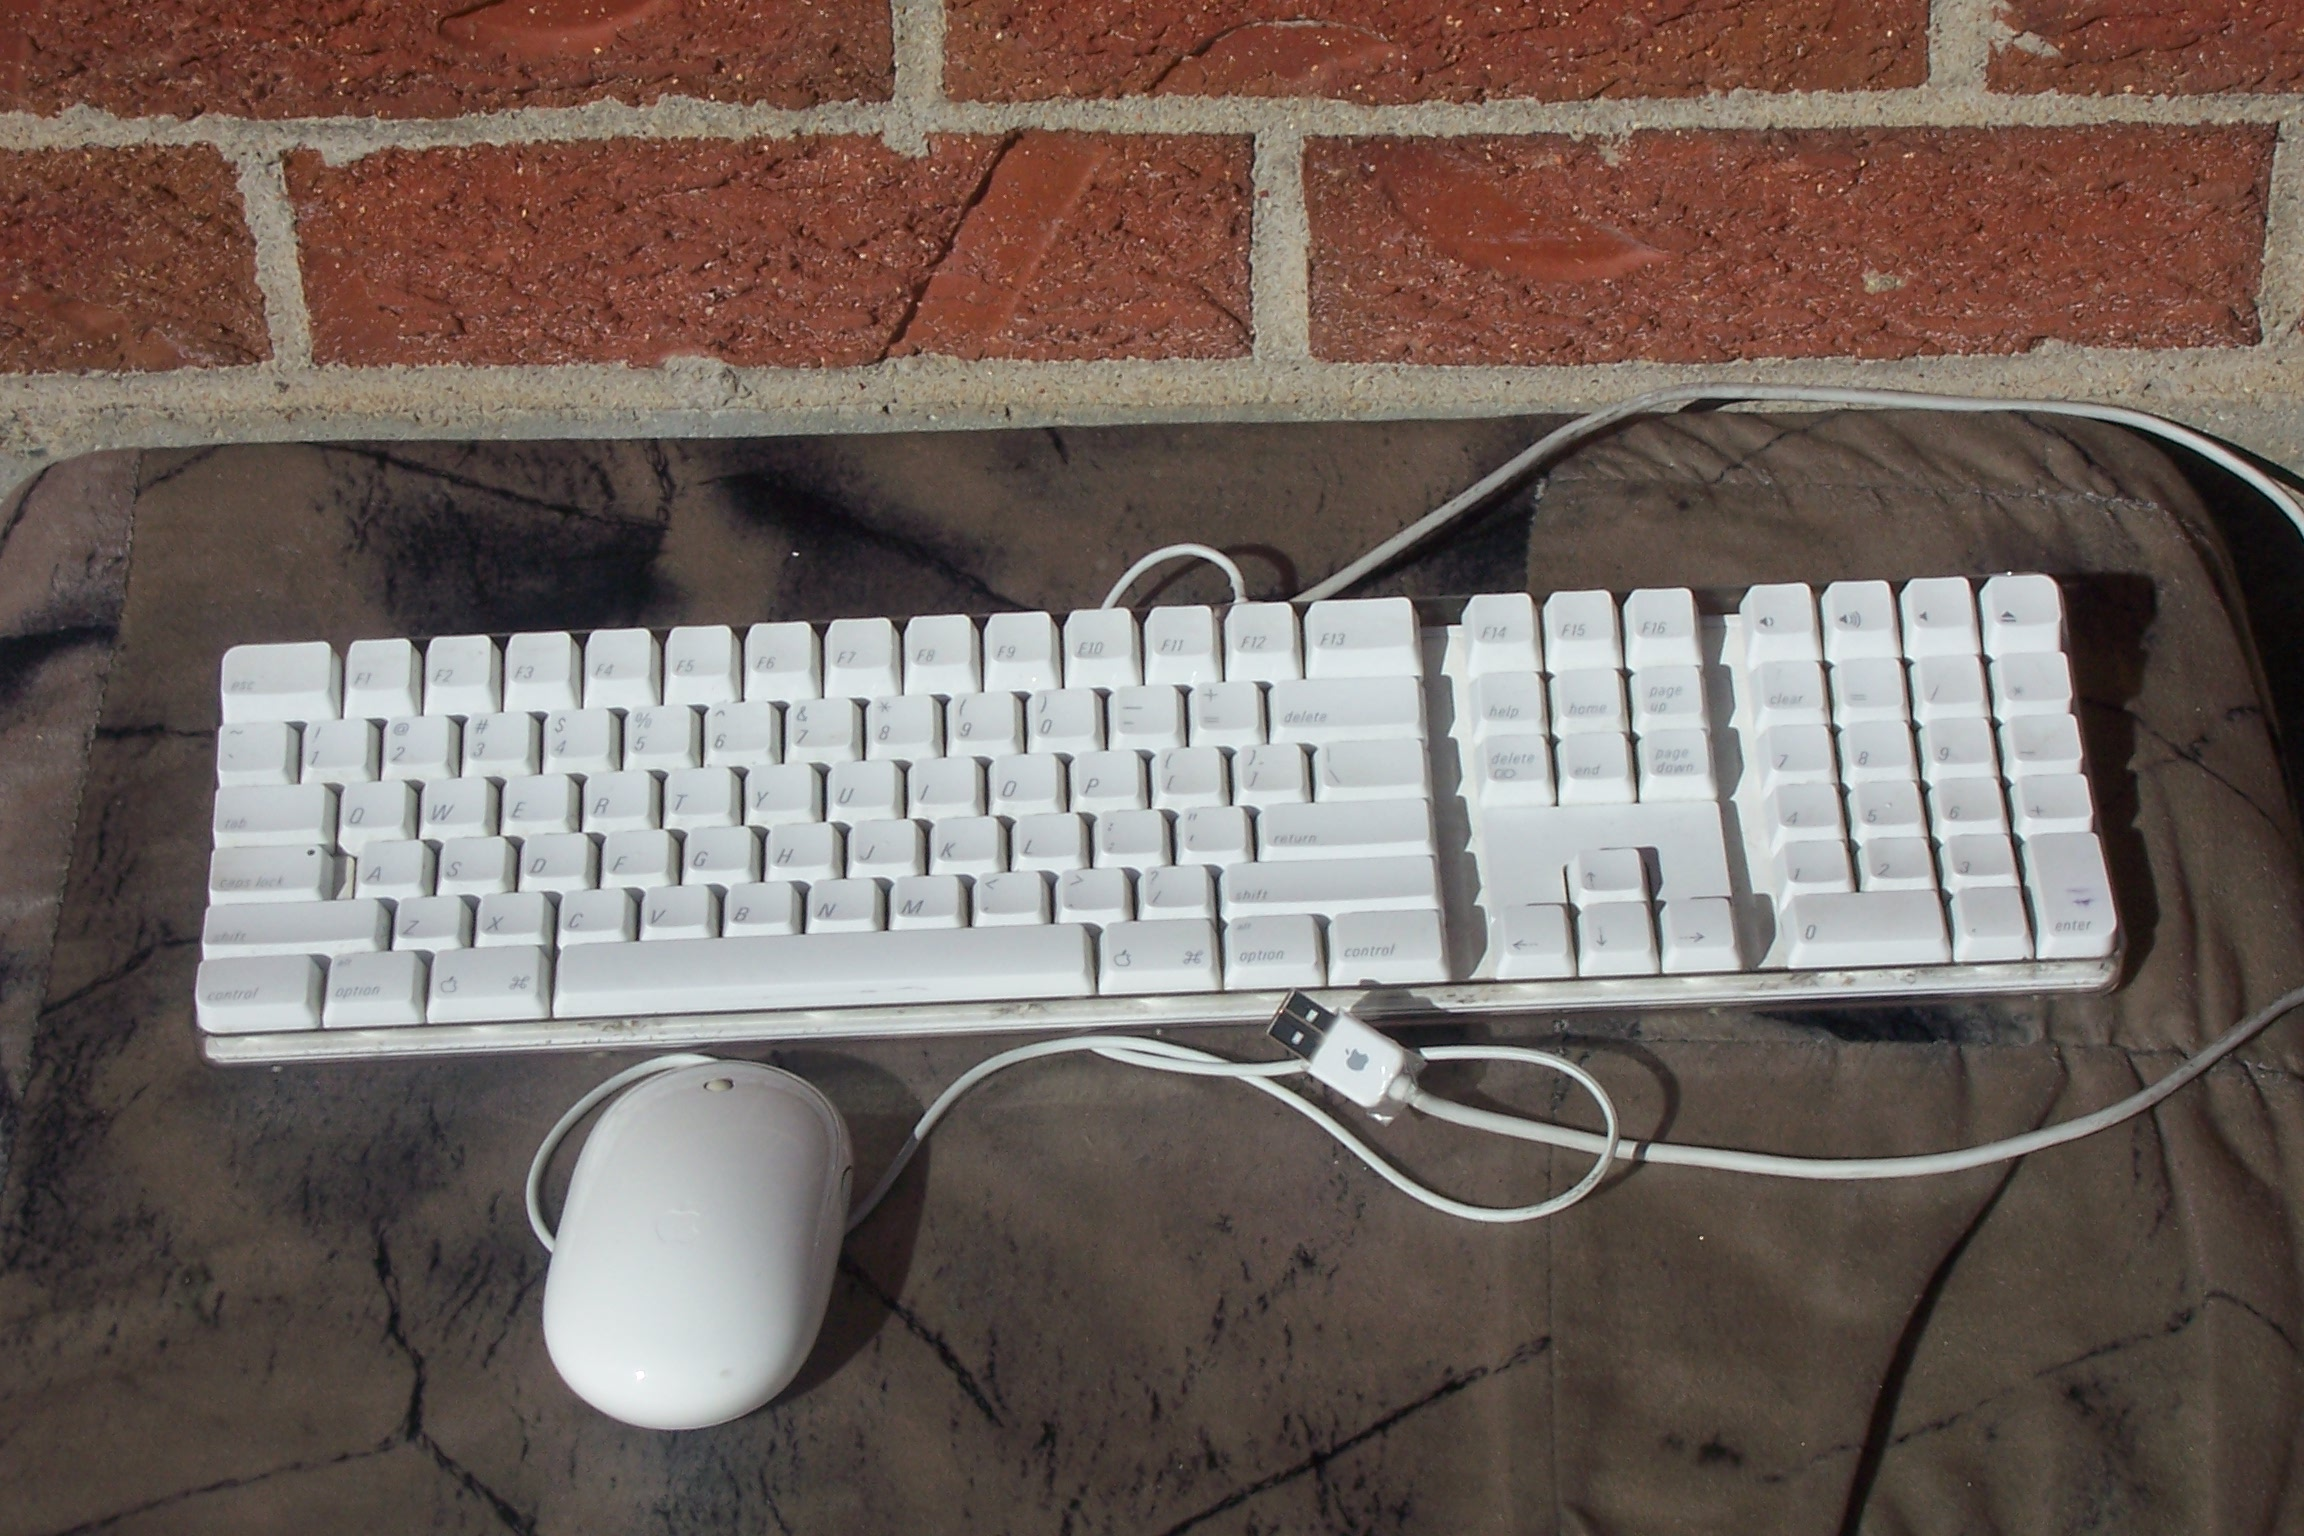 APPLE USB KEYBOARD A1048 AND APPLE USB MOUSE A1152